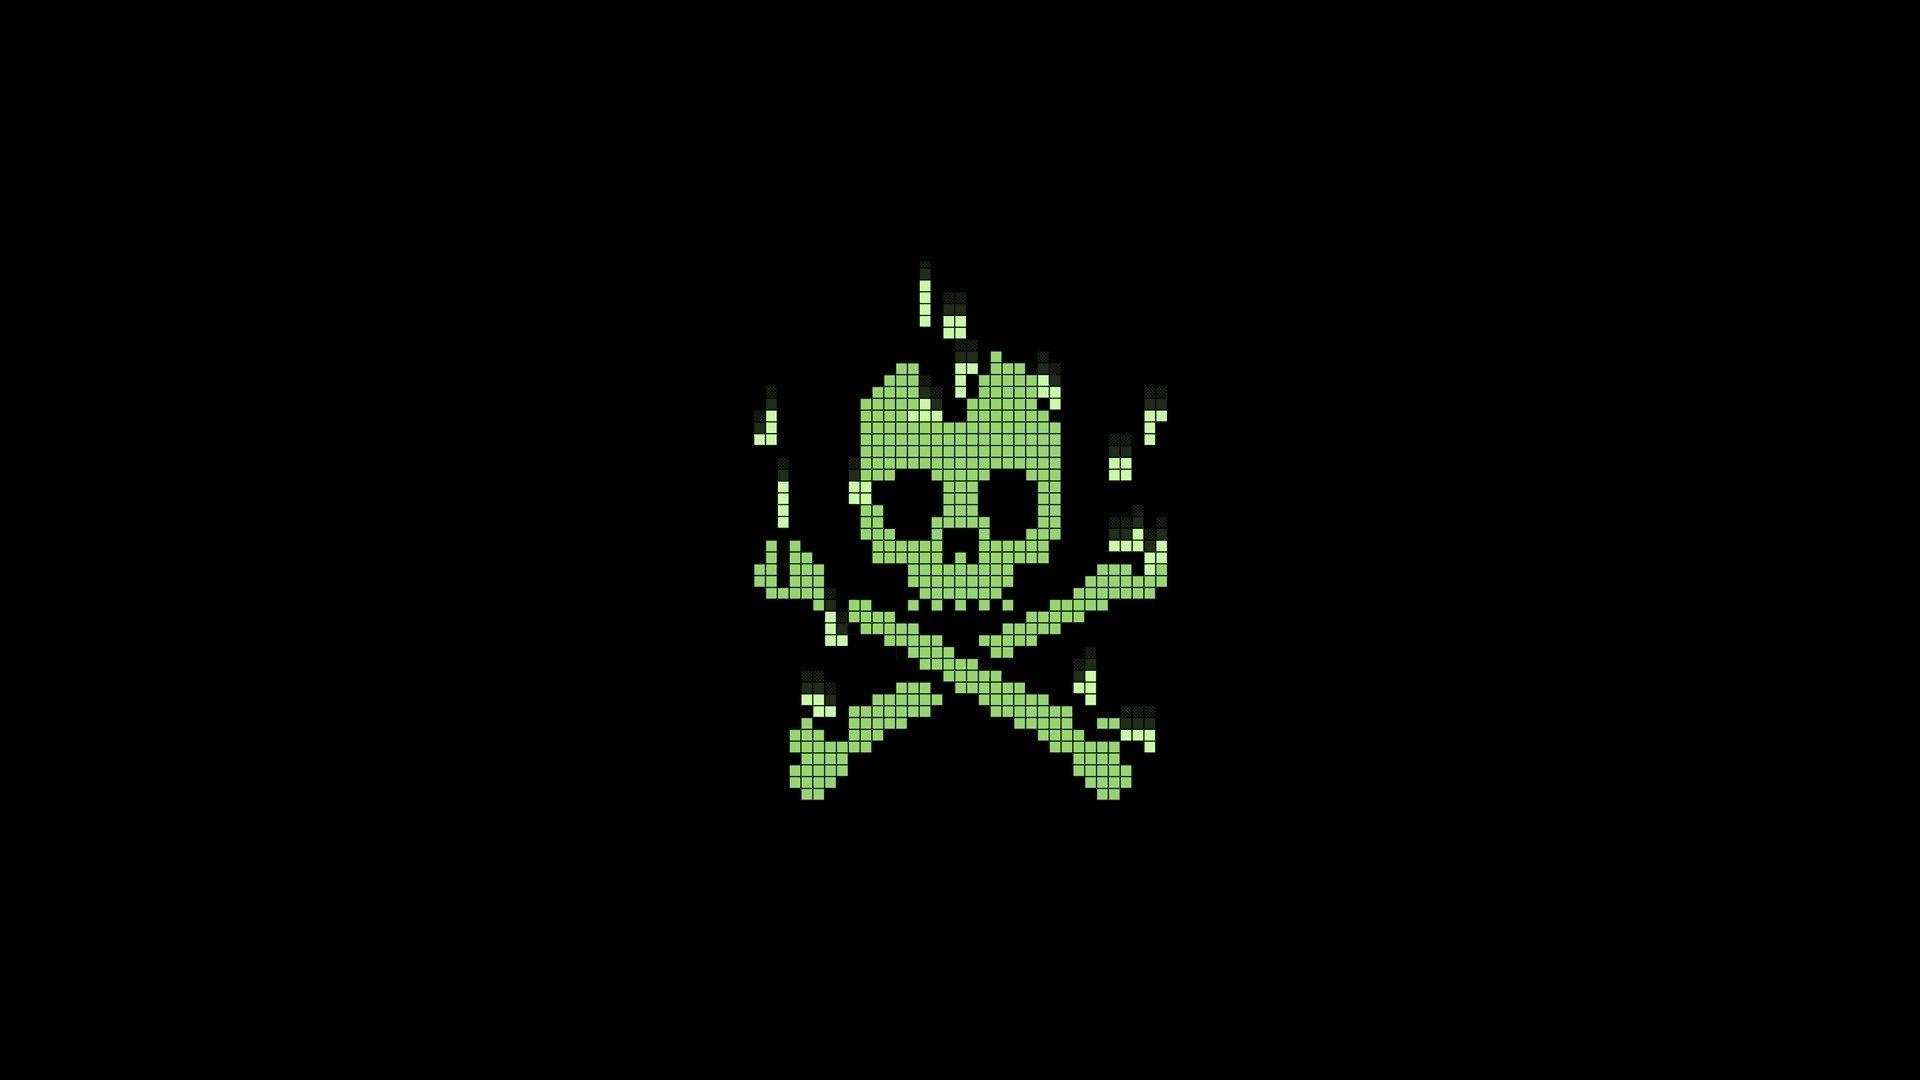 Green Hacker Skull Wallpapers Hd Wallpaper Cave